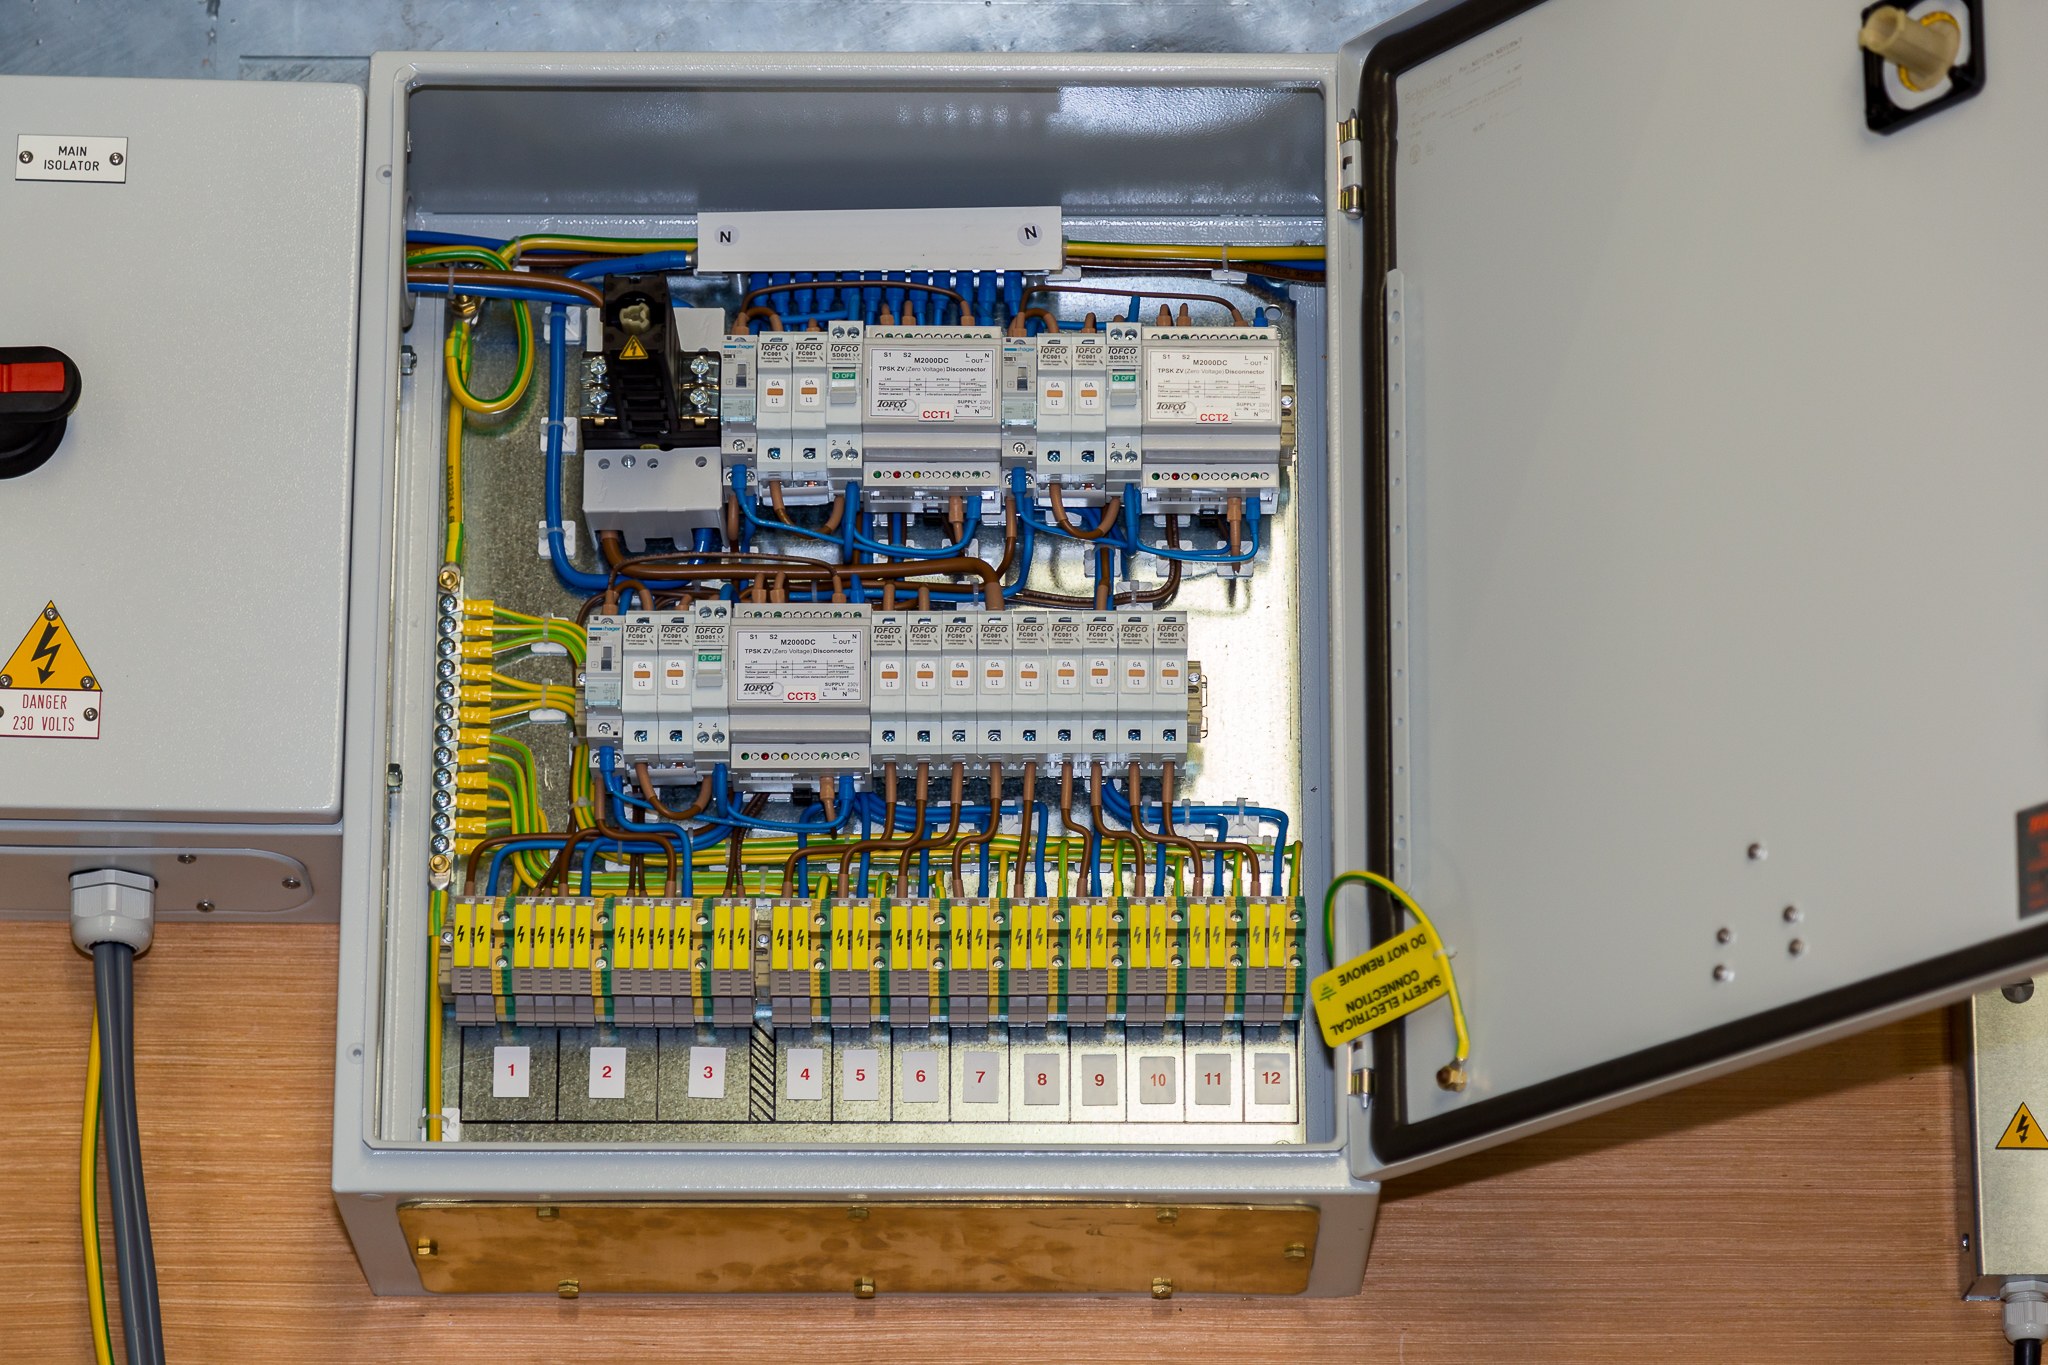 Pre Wired Panels Tofco Cpp Ltd Rcbo Wiring Diagram A Variety Of Protective Devices Fuses Mcb Rcd Etc Optional Internal Components Include Light Heater Thermostat Socket Document Holders